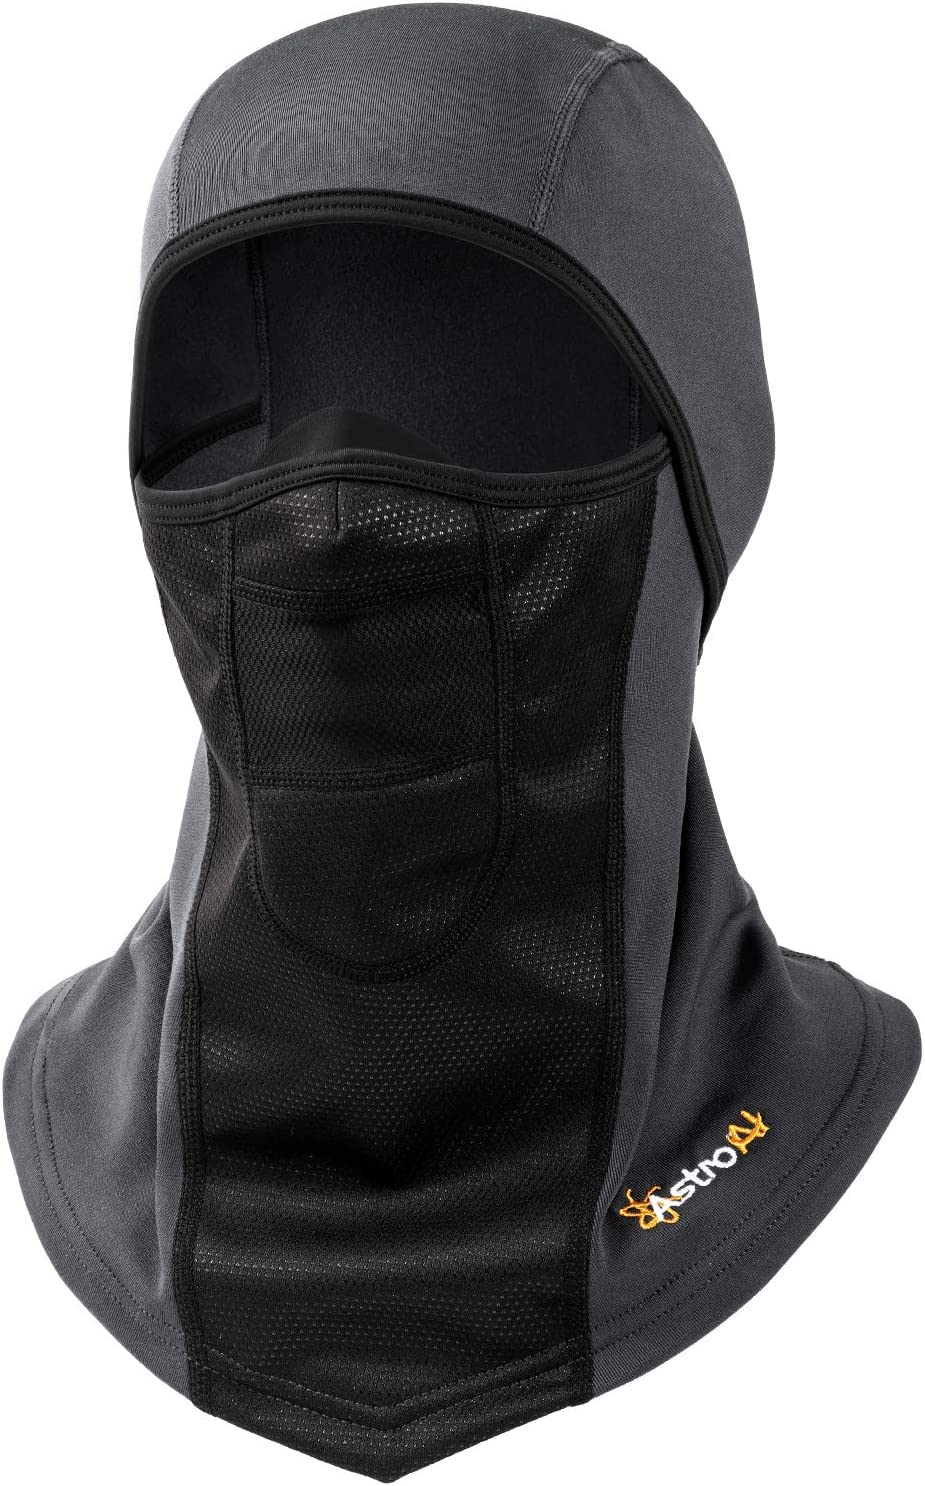 AstroAI Ski Mask Windproof Balaclava for Cold Weather, Winter Face Mask Breathable Stretchable for Skiing, Snowboarding & Motorcycle Riding, Full Protection Mask for Men/Women Grey